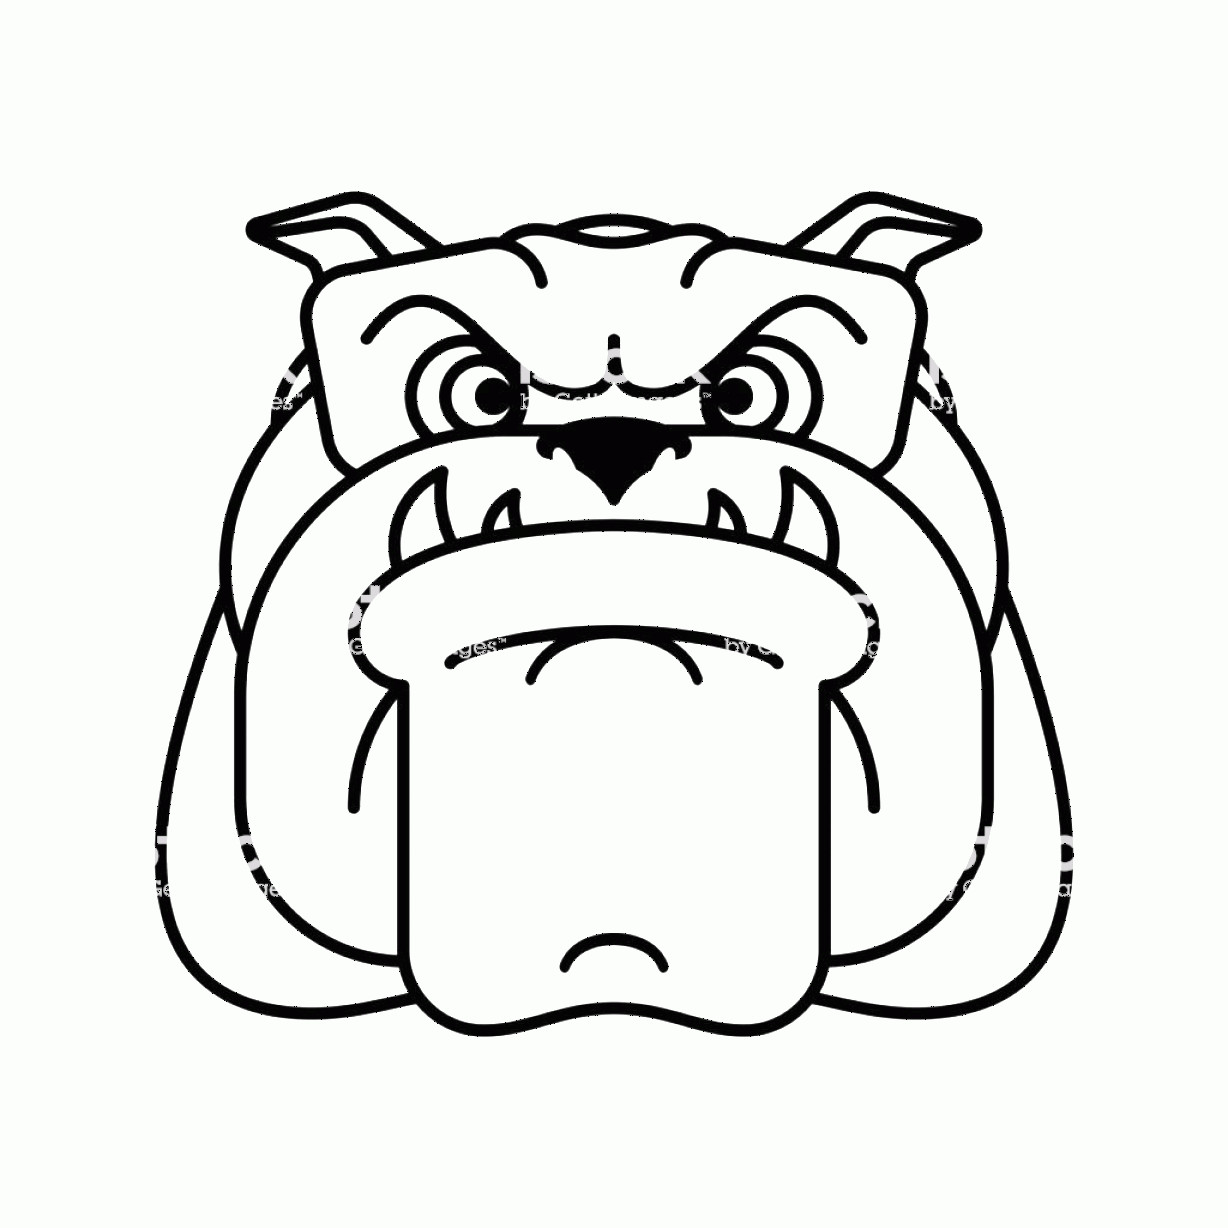 Angry Dog Vector Black And White: Guard Dog Face Angry Dog Head Sign Vector Illustration Gm